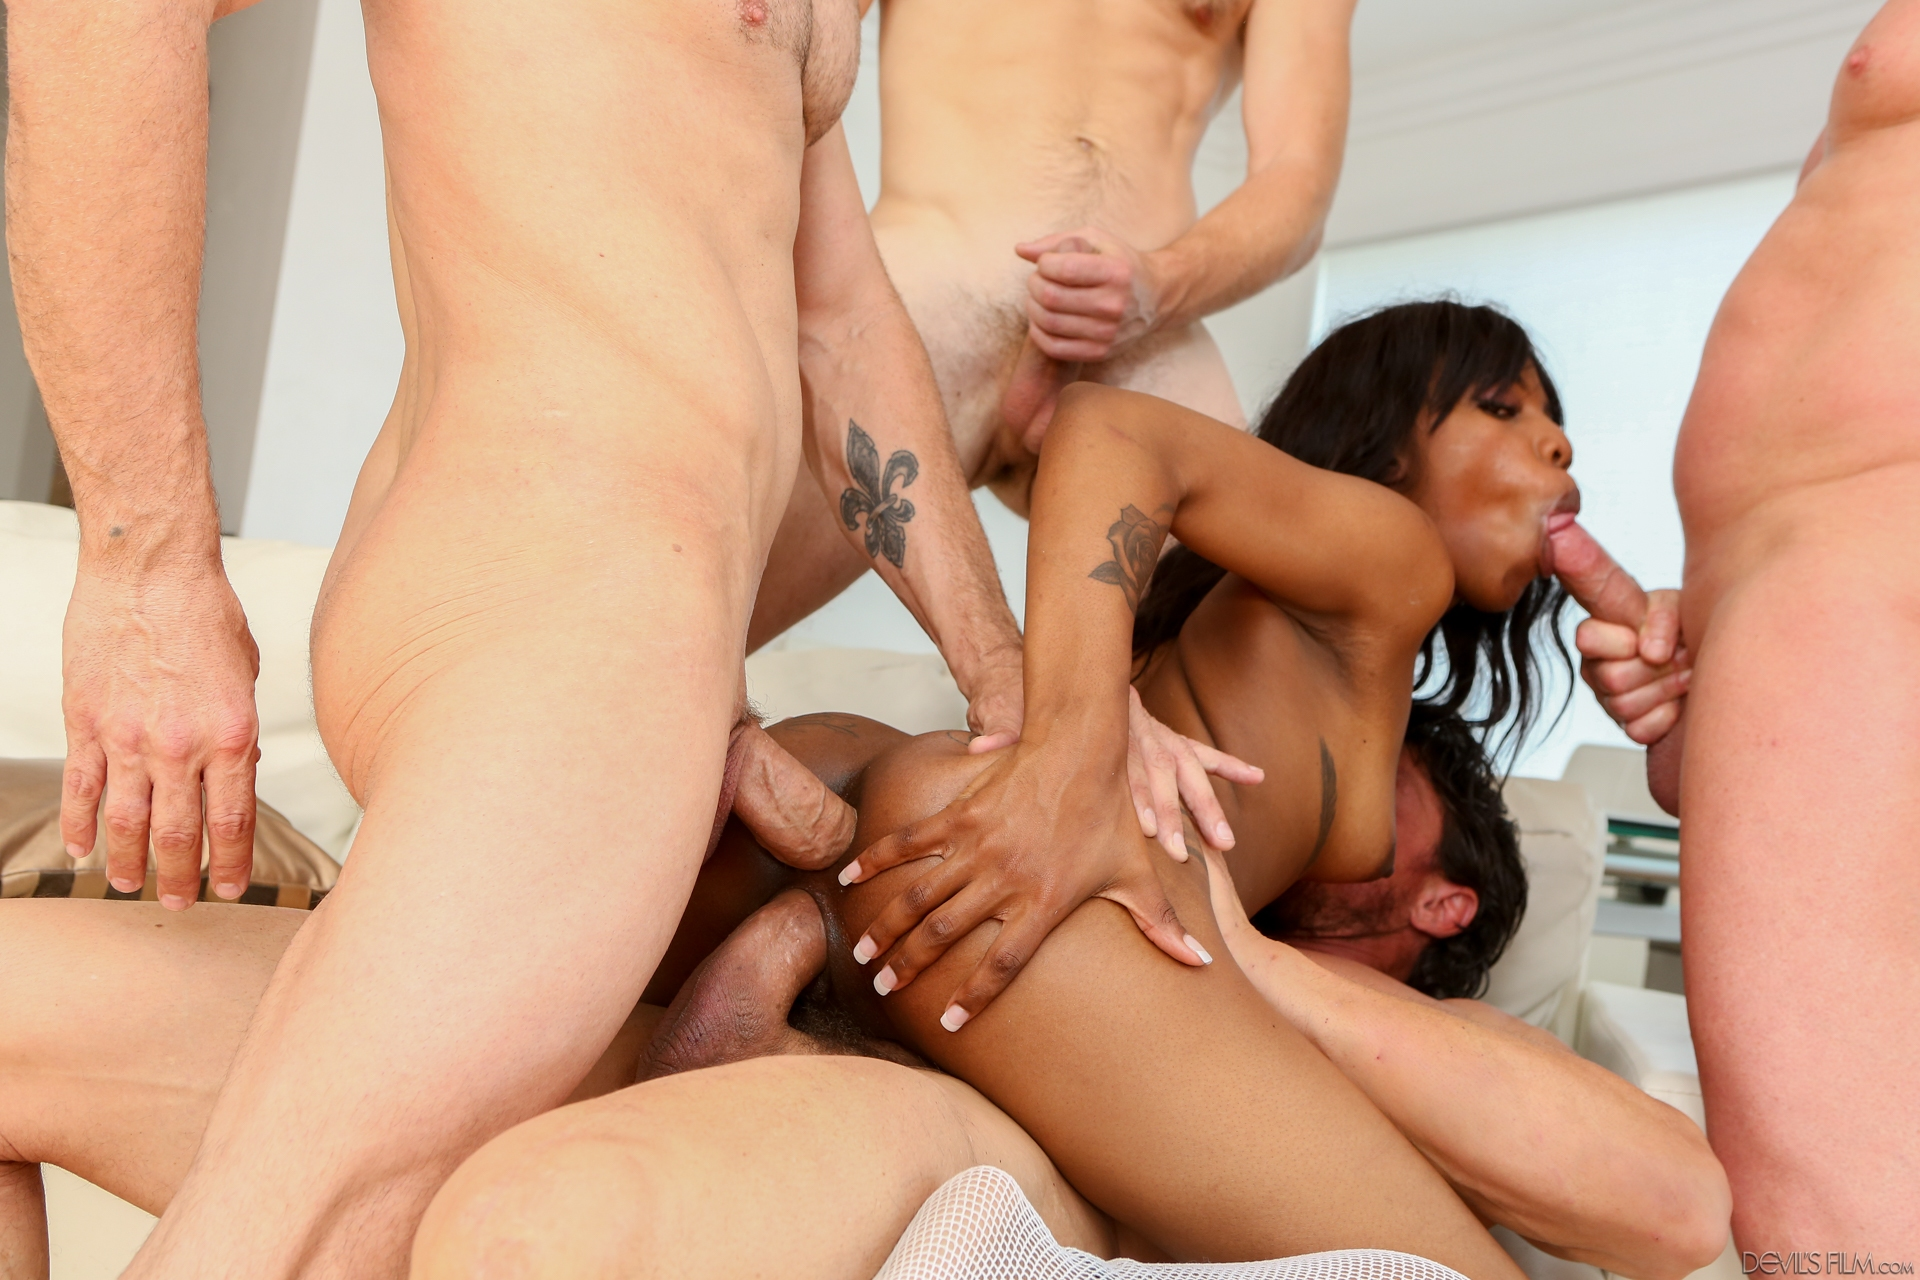 Black Girl White Guy  Most Sexy Porn  Free Hd  4K Photos-5788